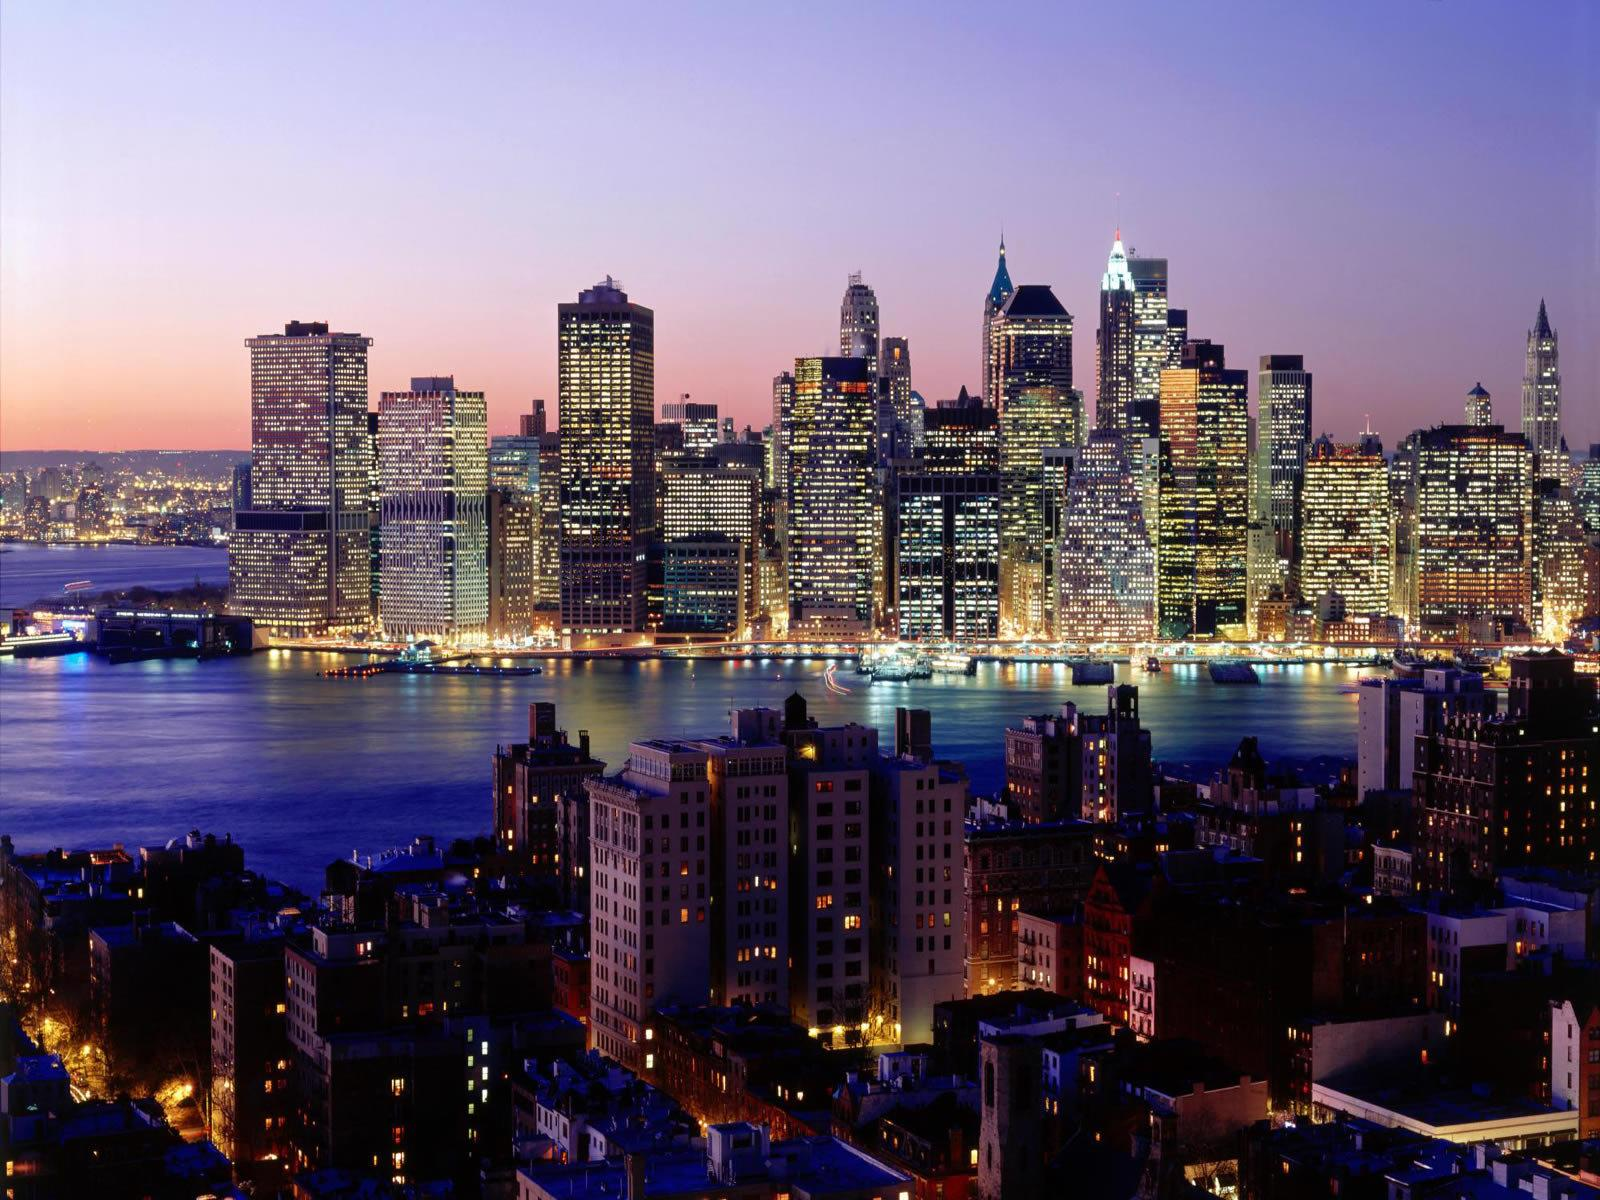 http://2.bp.blogspot.com/-640SJRGvZ44/TbKMkUGBUHI/AAAAAAAAAMI/RNDwNlBEIDs/s1600/new-york-city-wallpaper-3.jpg